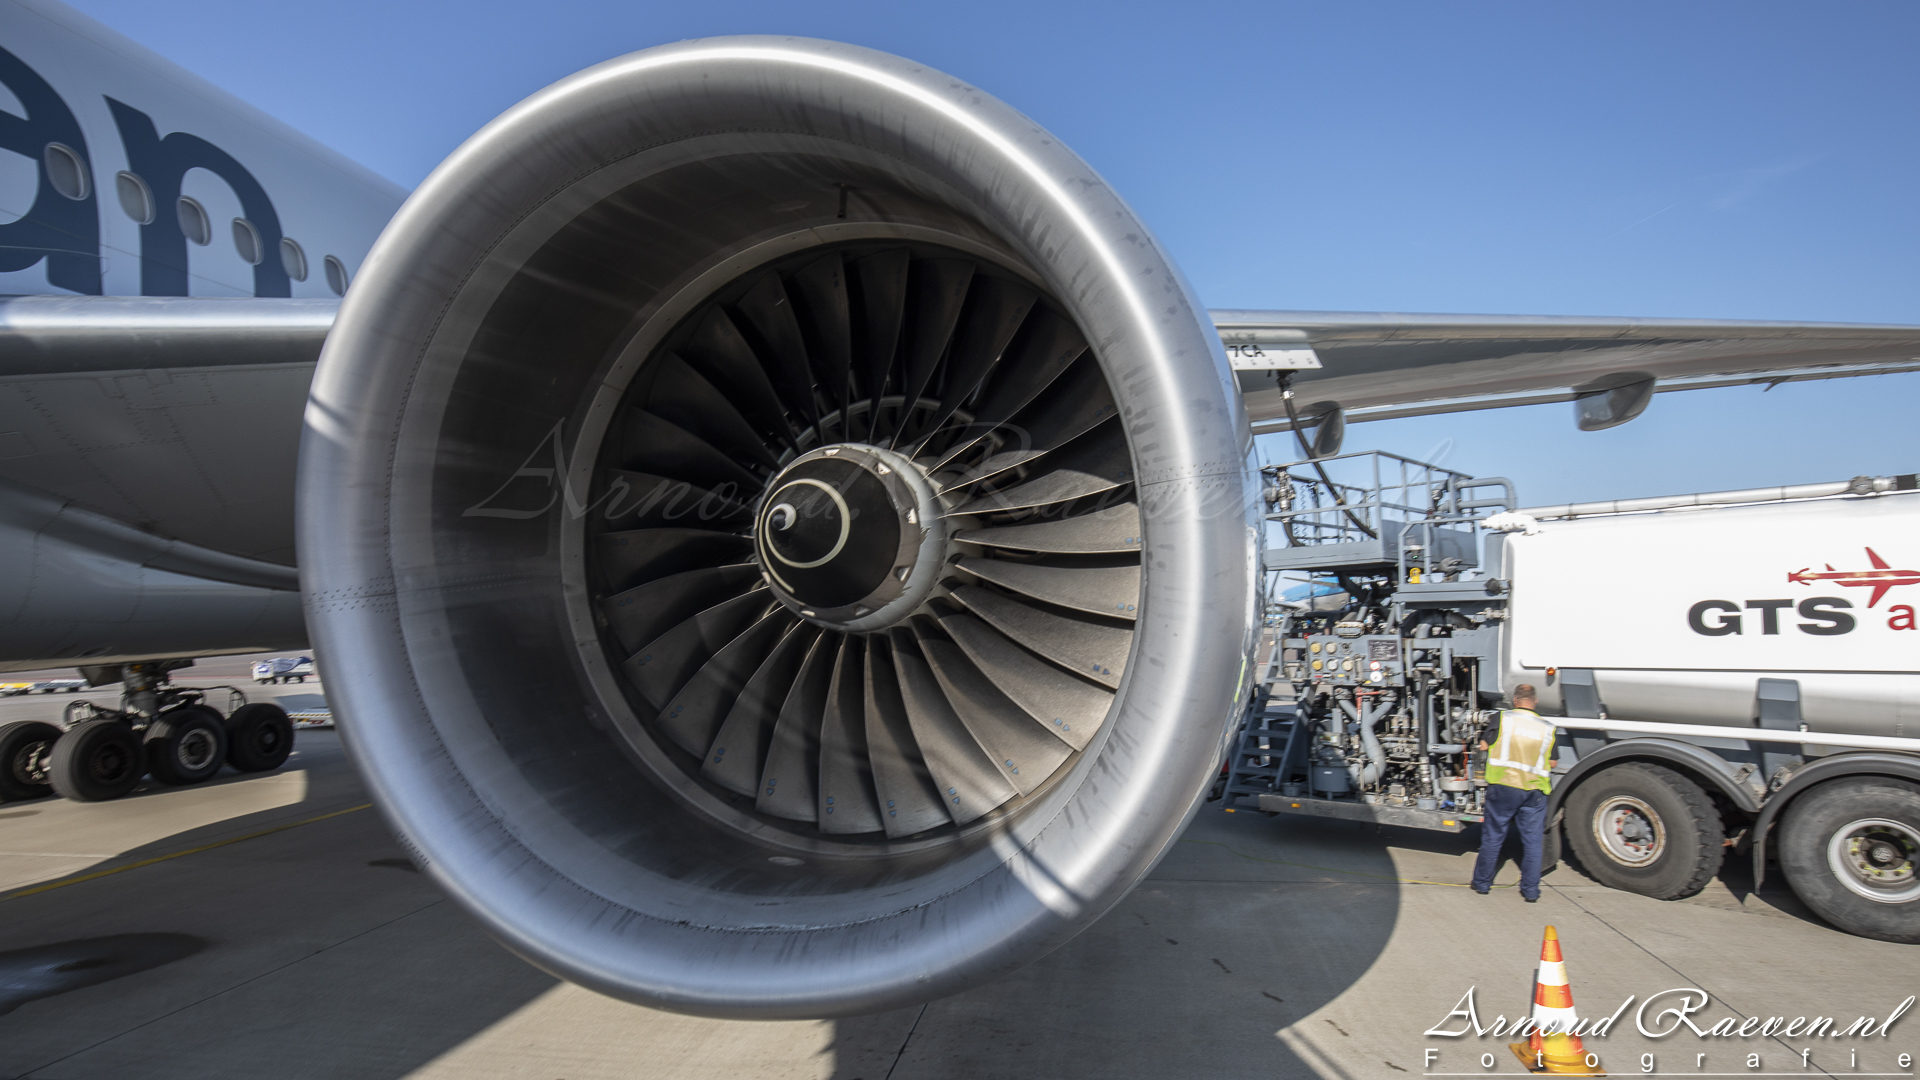 Rolls Roys Trent 892 (American Airlines Boeing 777-200, N766AN)